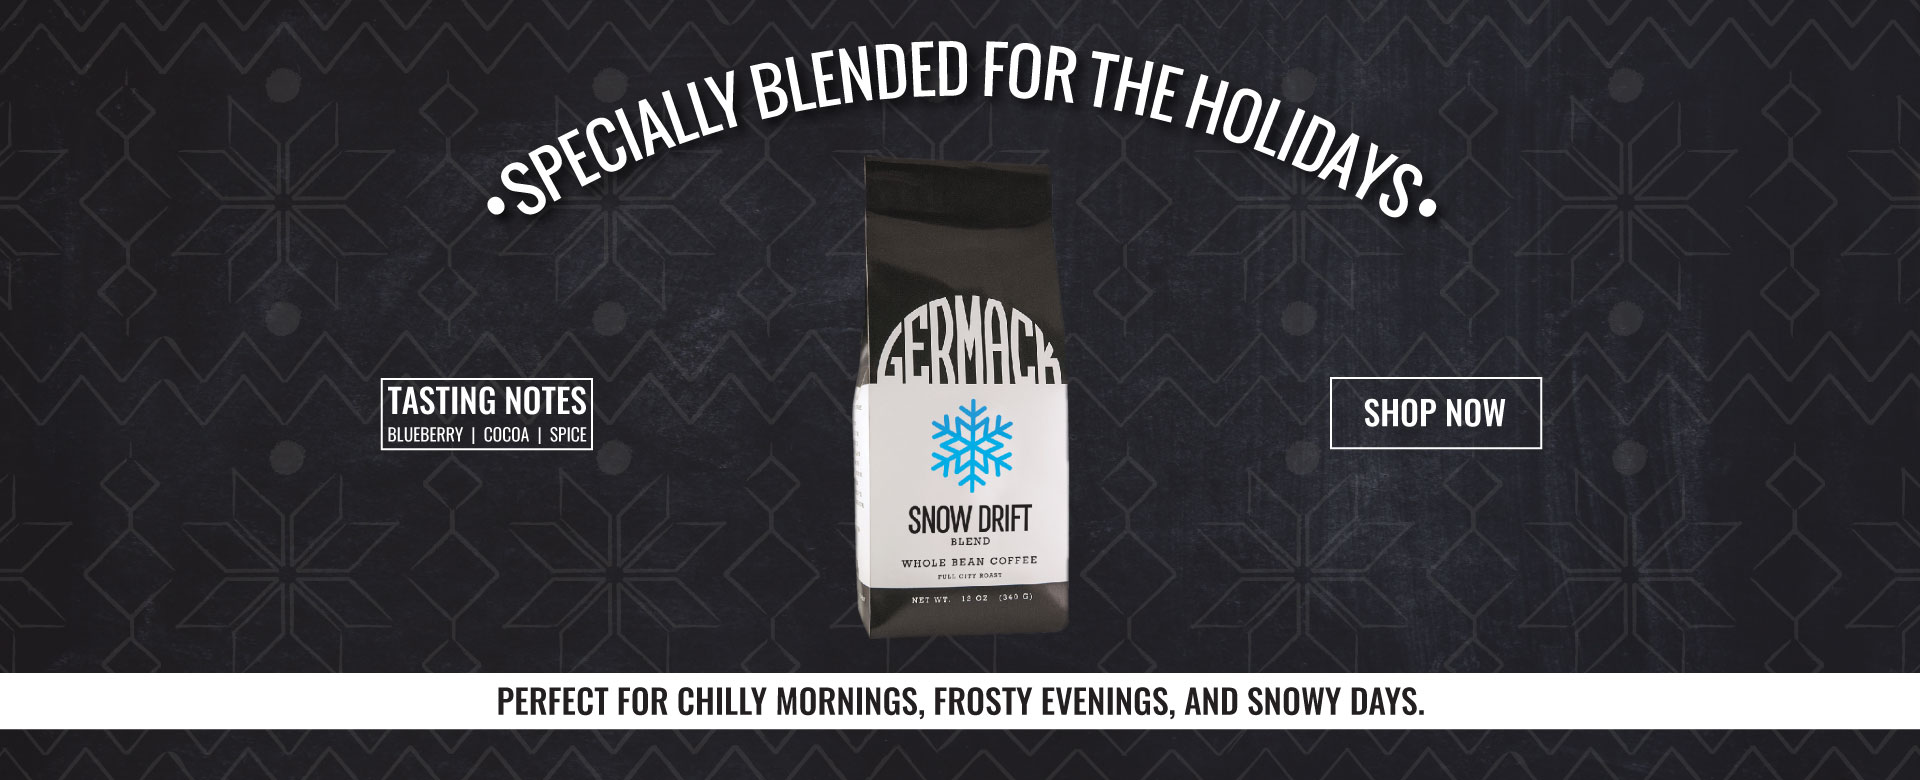 Specially Blended For The Holidays